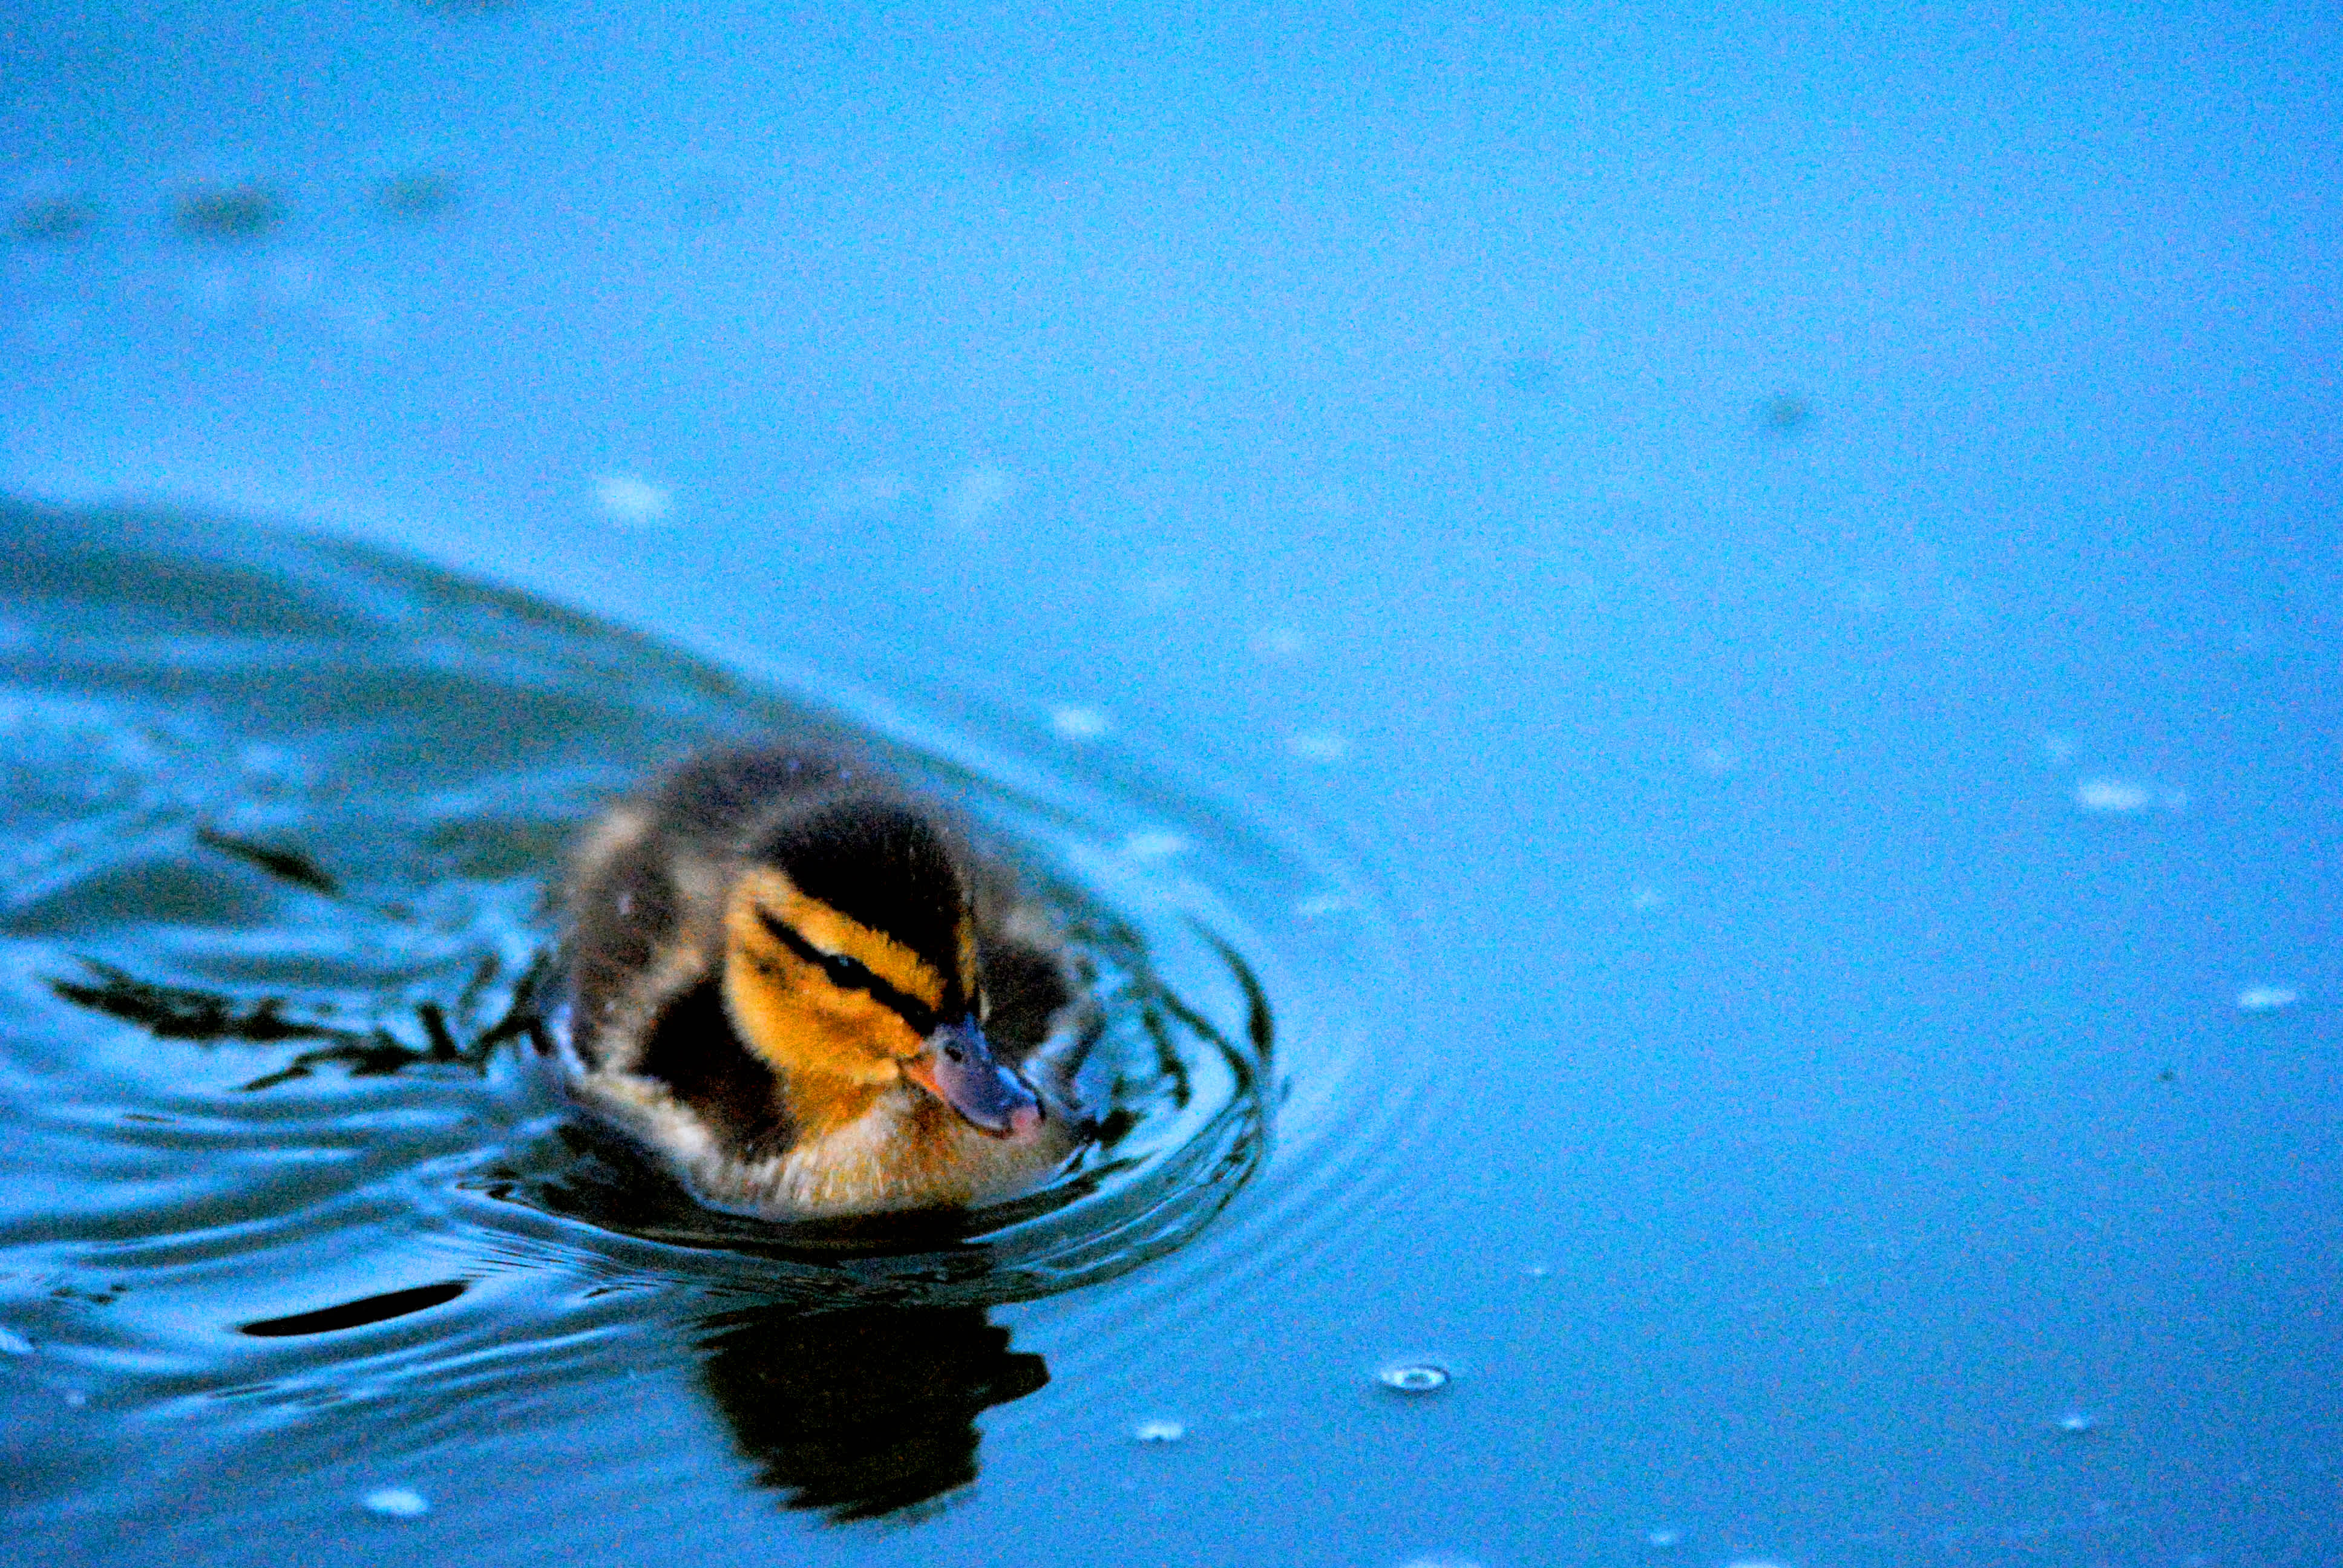 Duckling swimming in blue water.